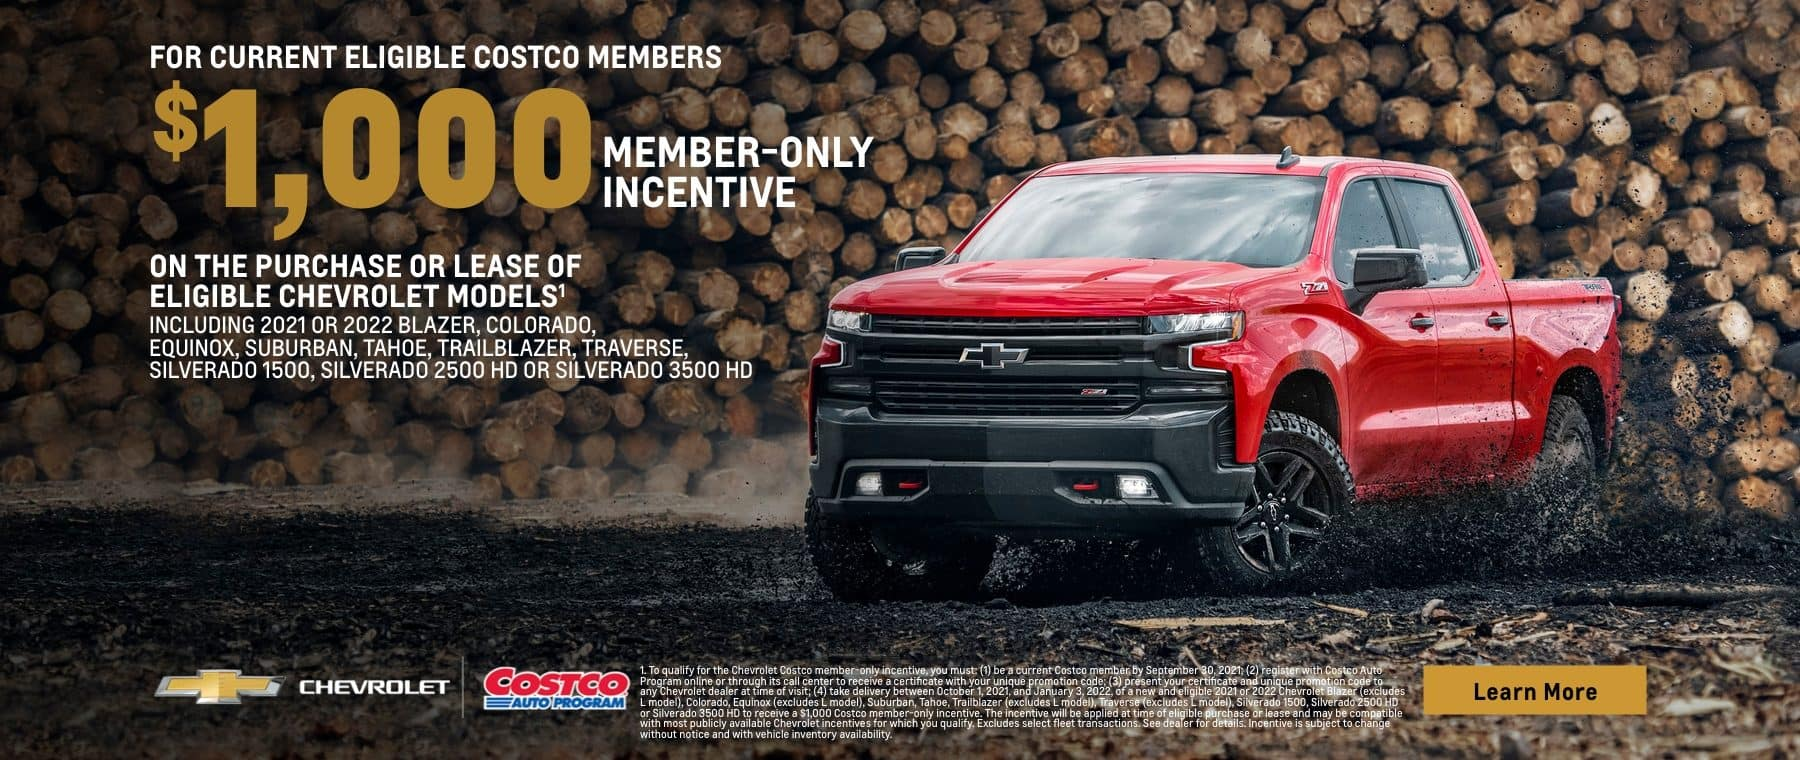 $1000 member-only incentive